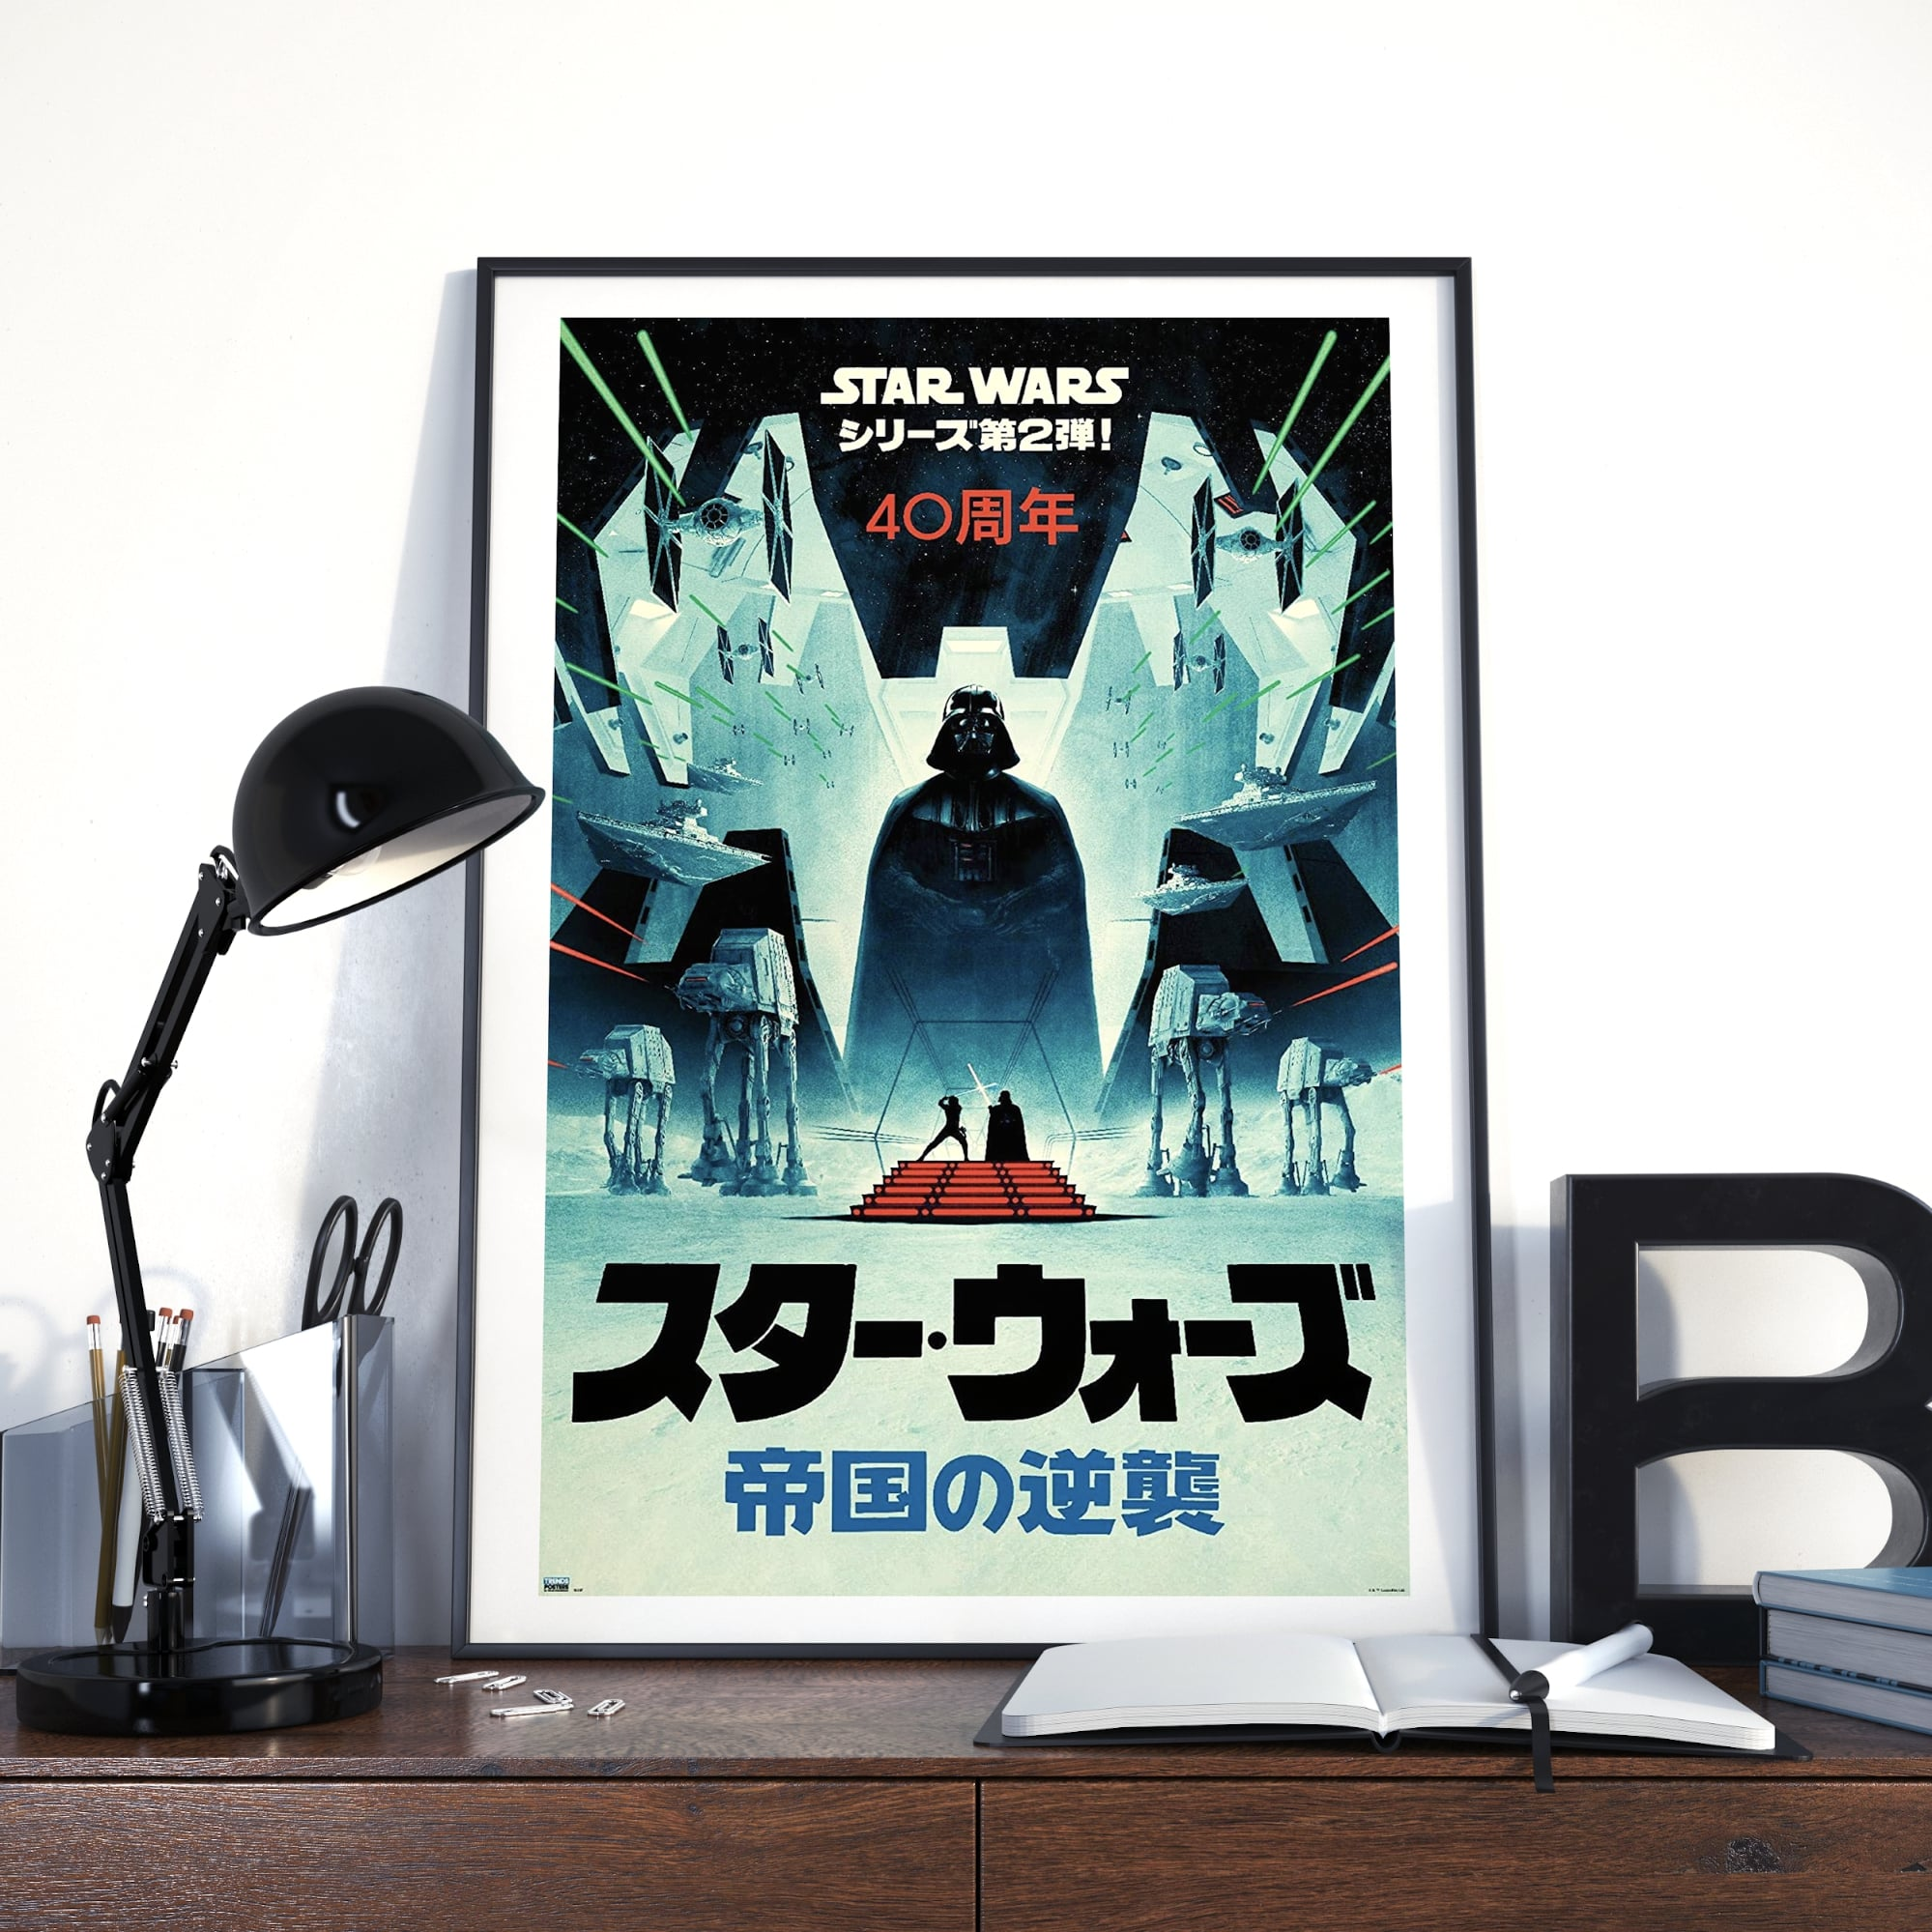 Image of Star Wars movie poster in a frame on a desk